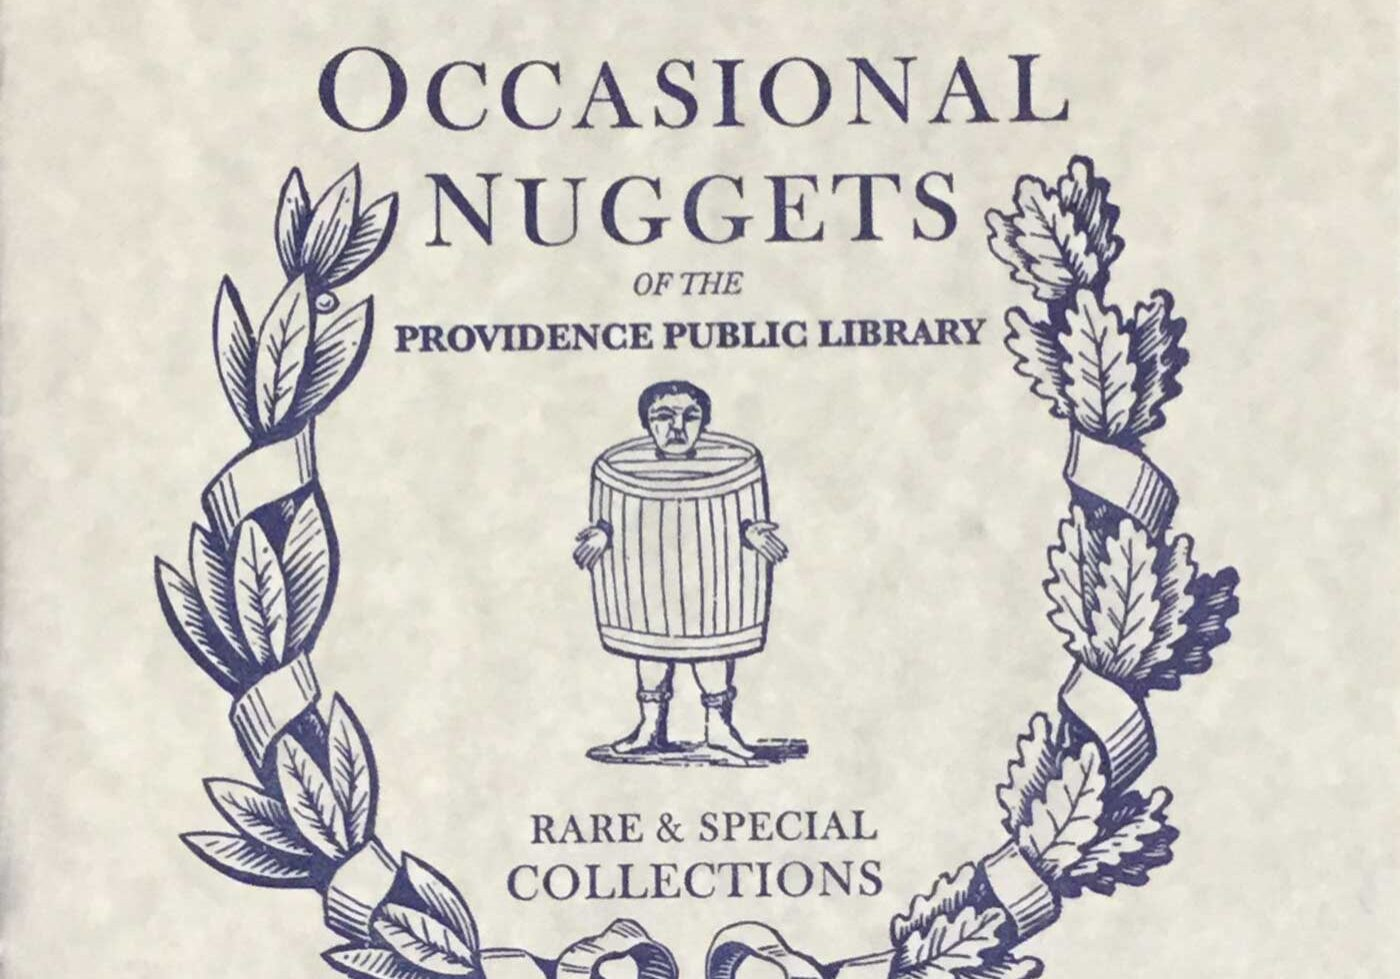 """The cover of """"Occasional Nuggets"""", a publication produced by PPL Special Collections. This issue was prepared by Creative Fellow Micah Salking."""